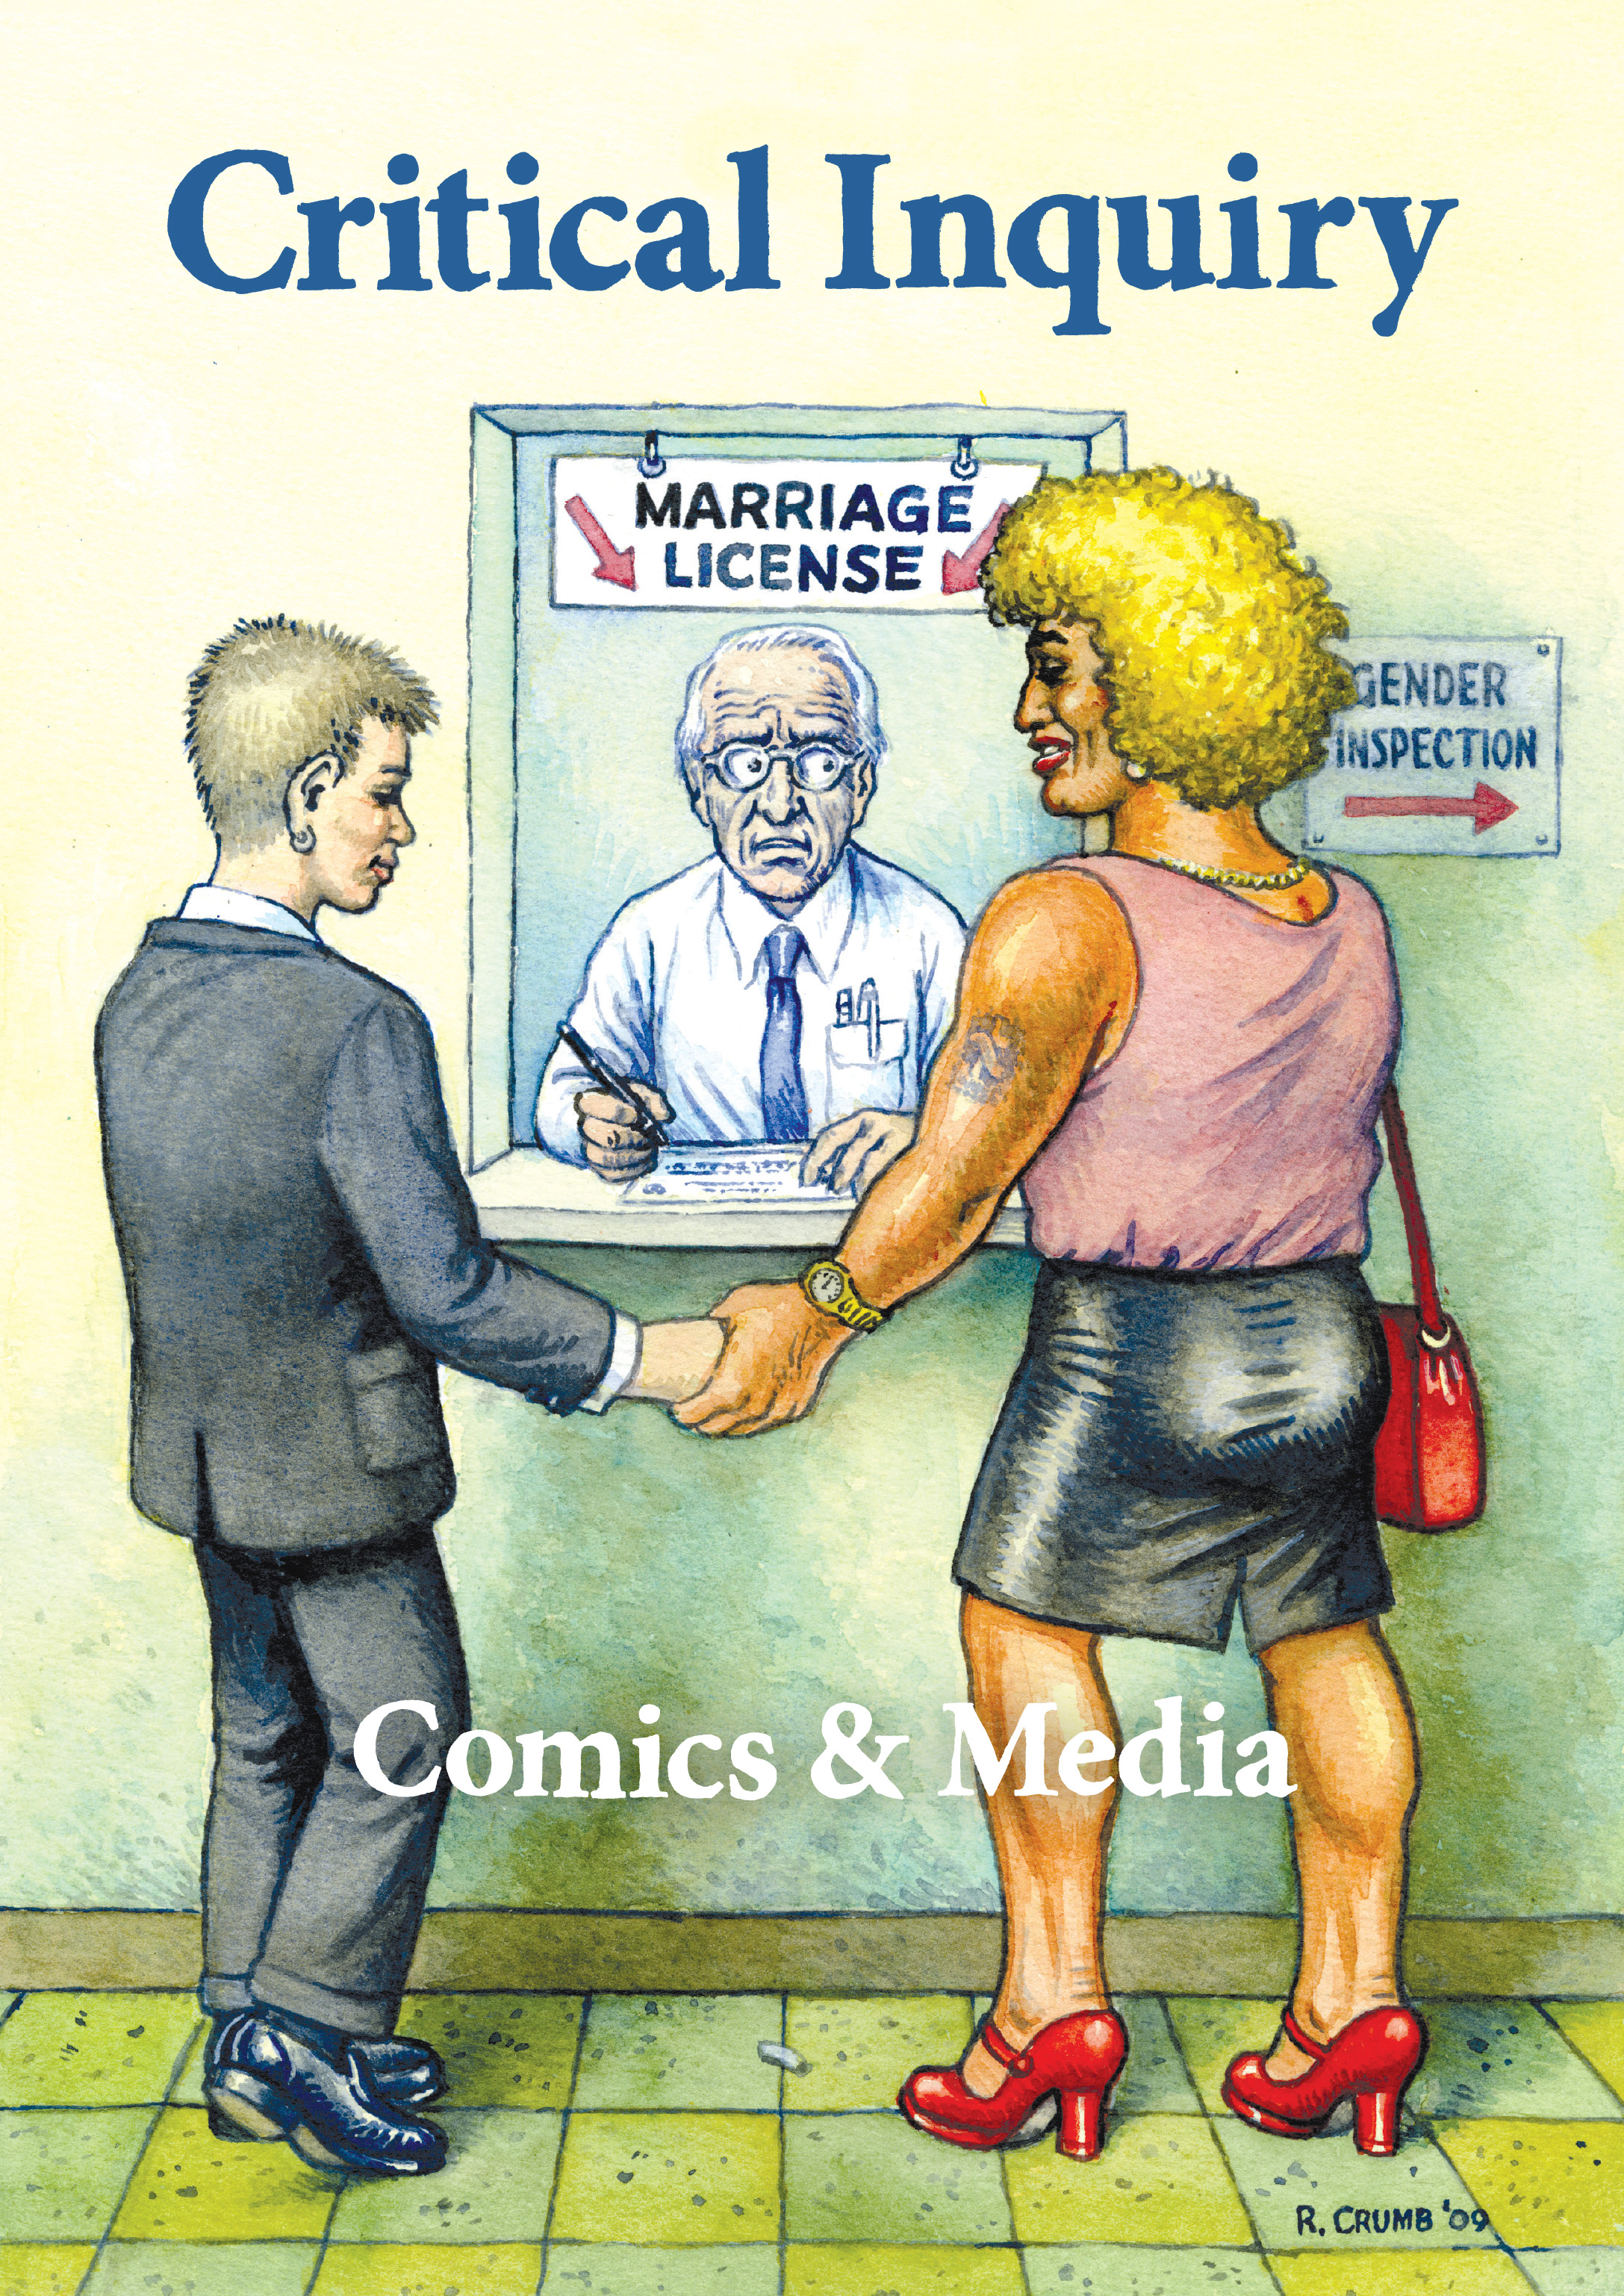 Comics & Media: A Special Issue of